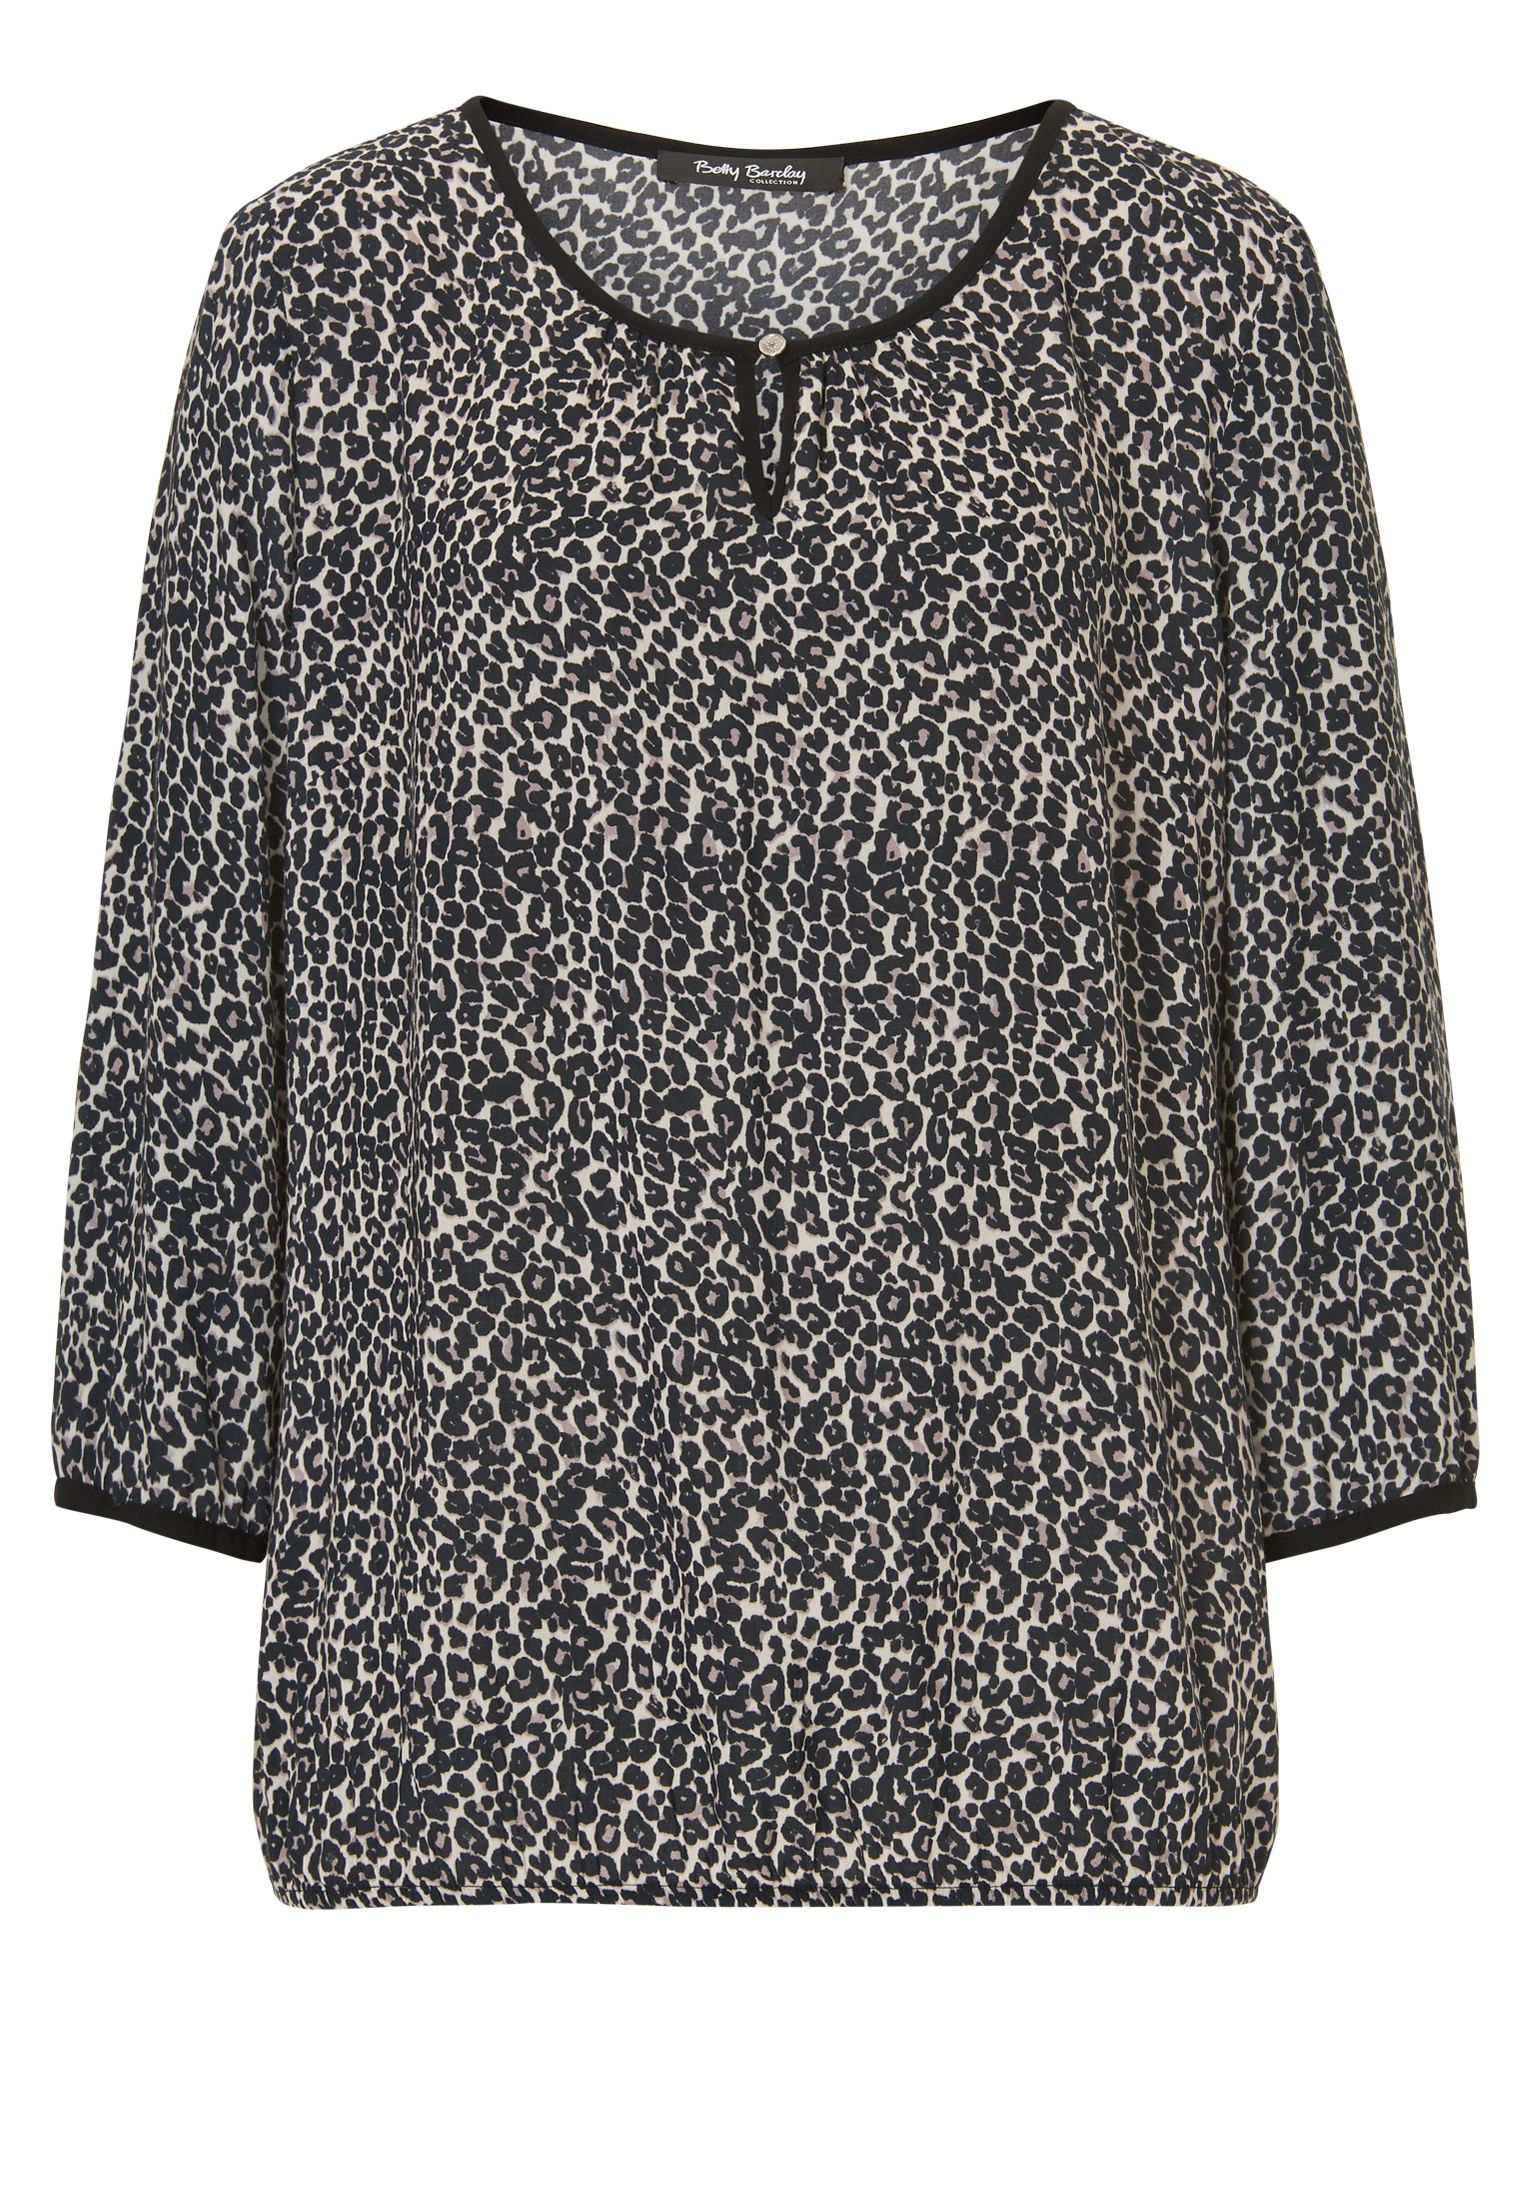 Betty Barclay Animal print blouse, Multi-Coloured